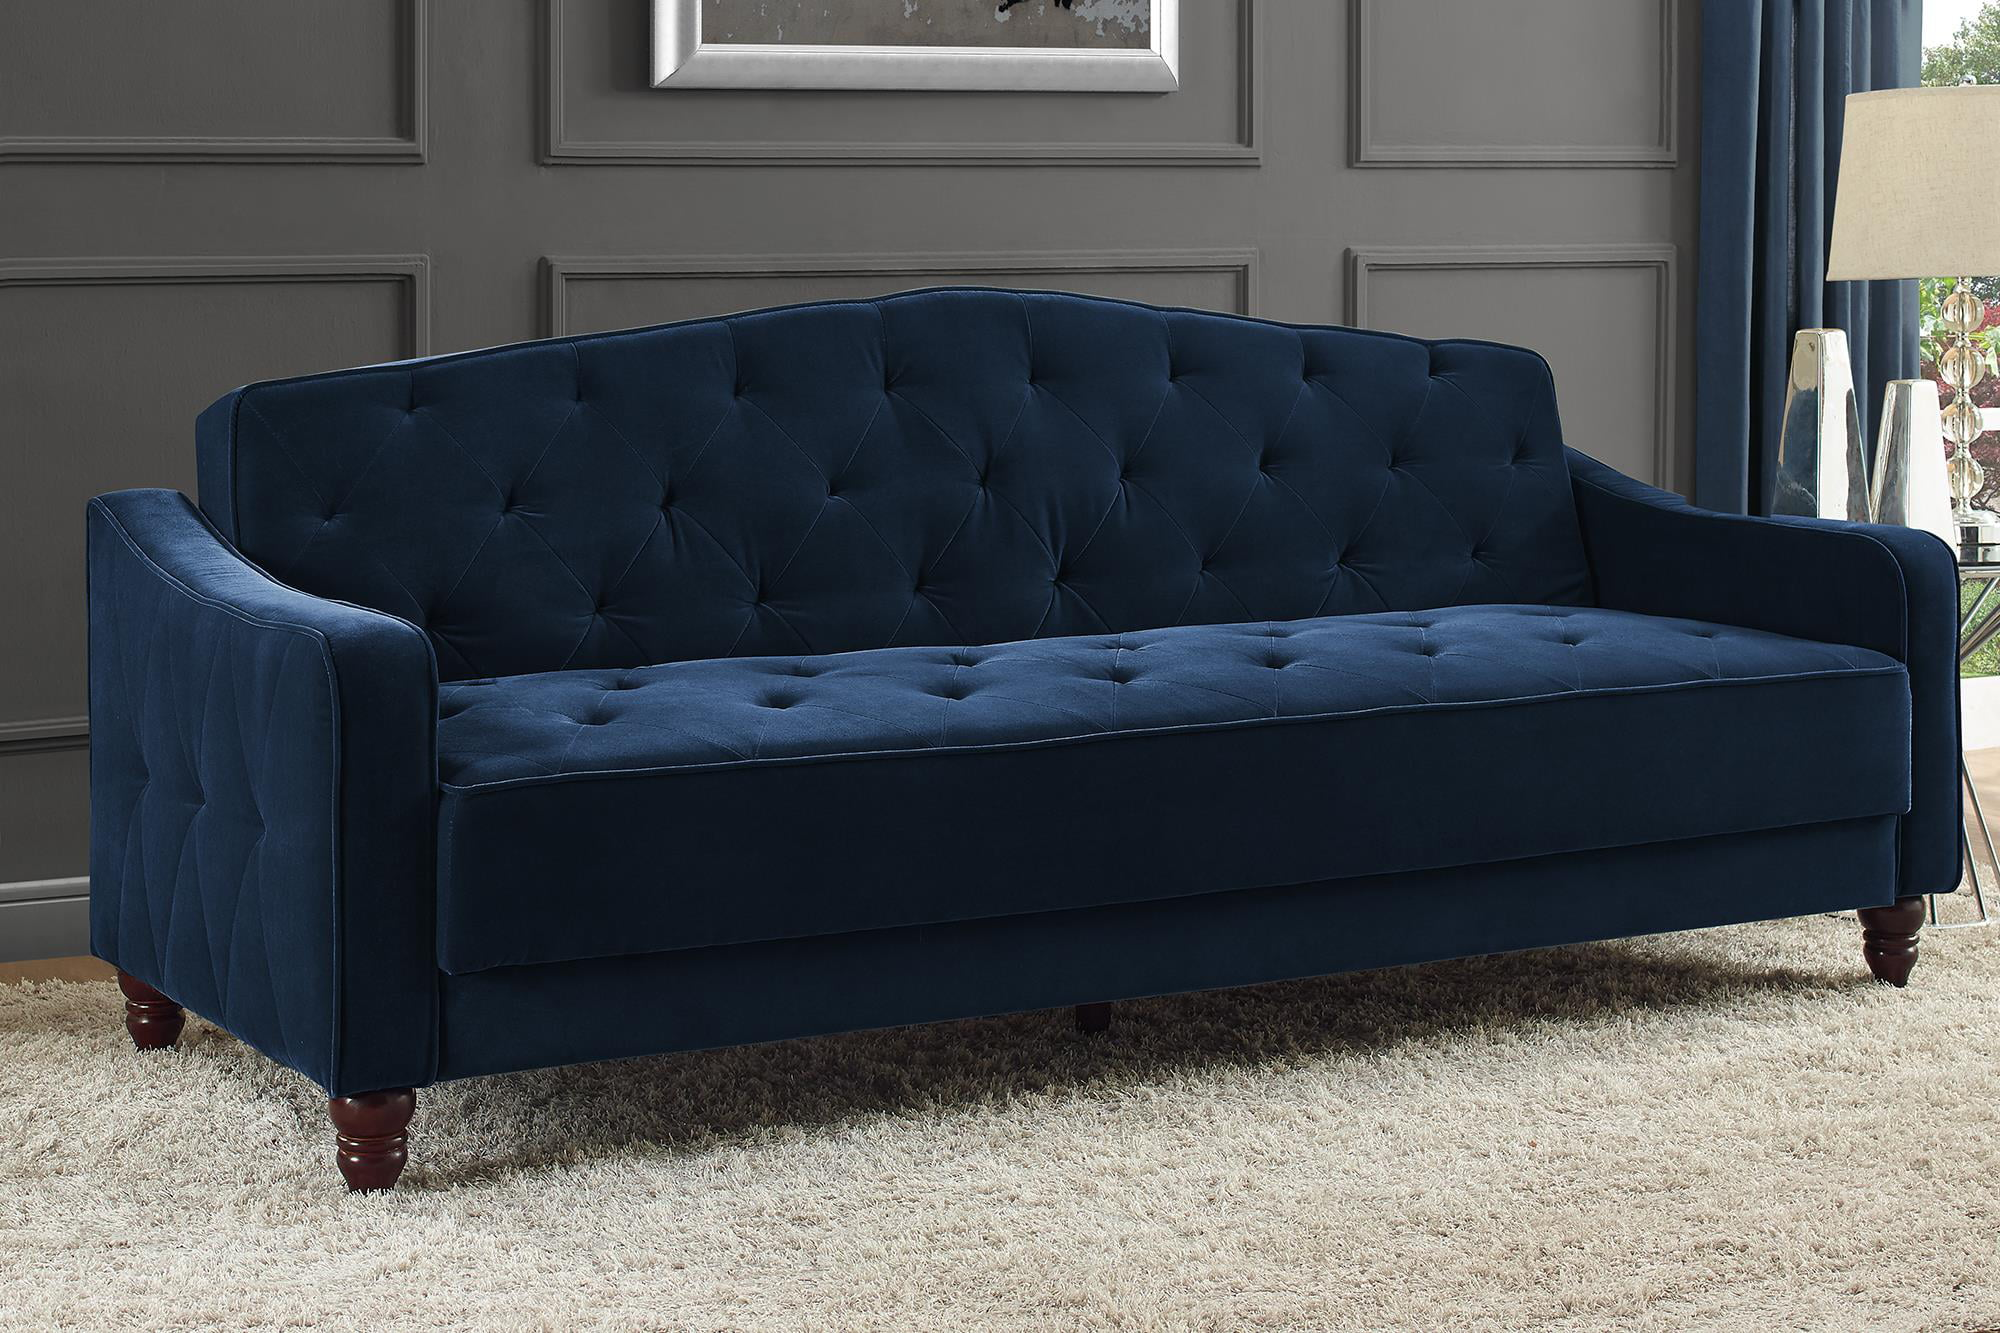 Novogratz Vintage Tufted Sofa Sleeper II, Multiple Colors - Walmart